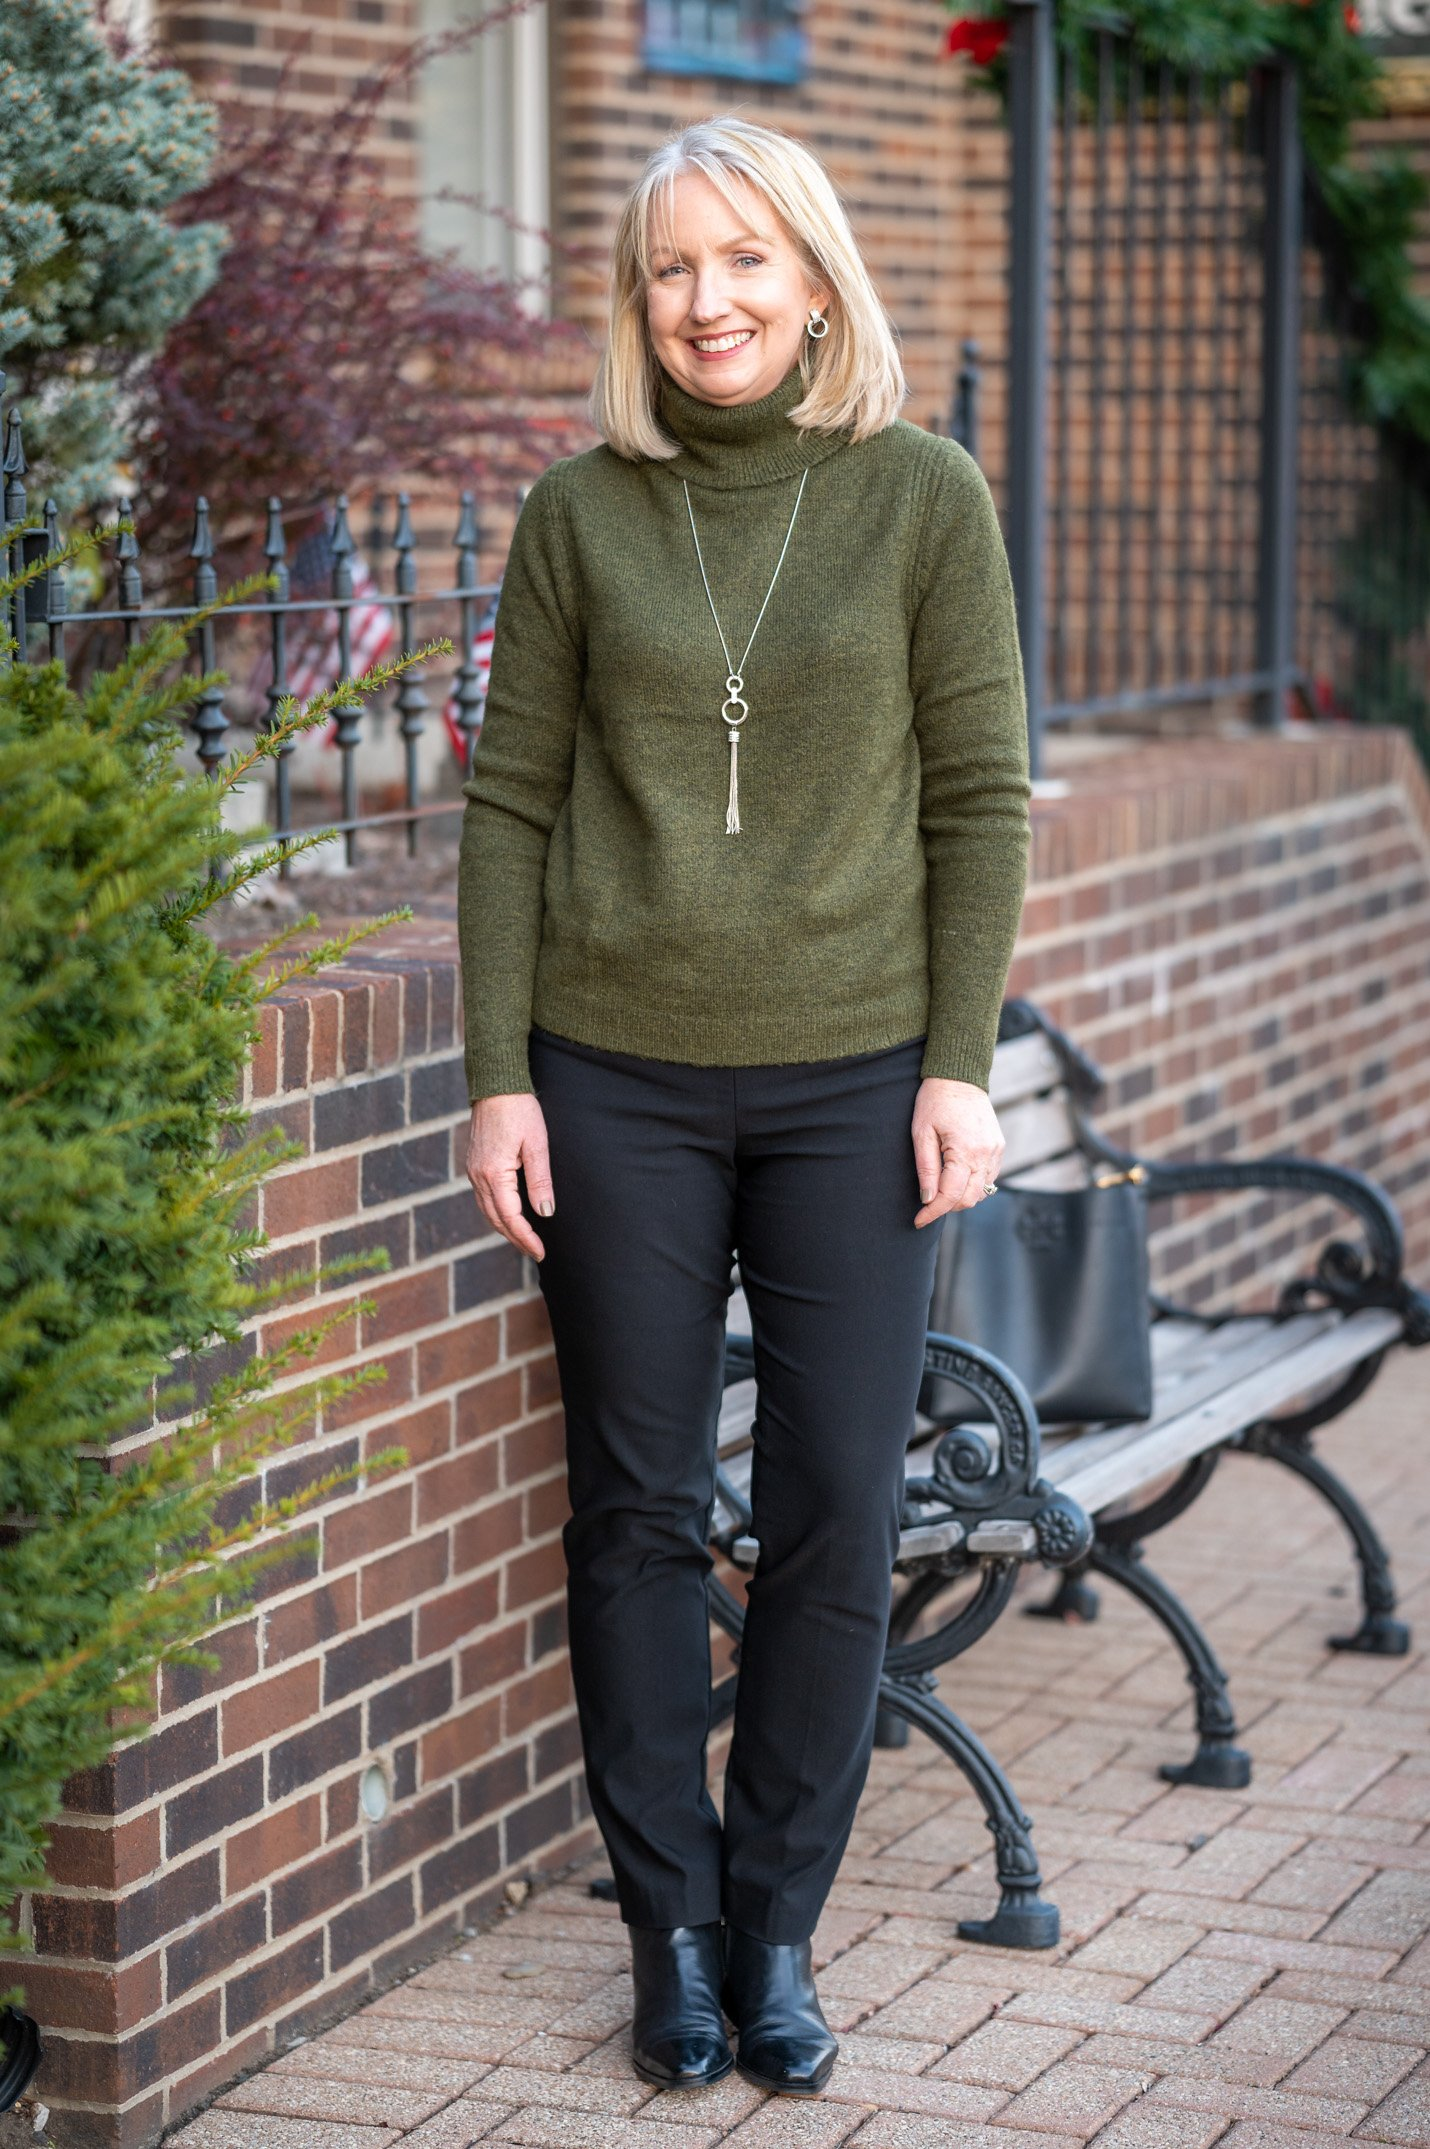 Sweater and Black Pants